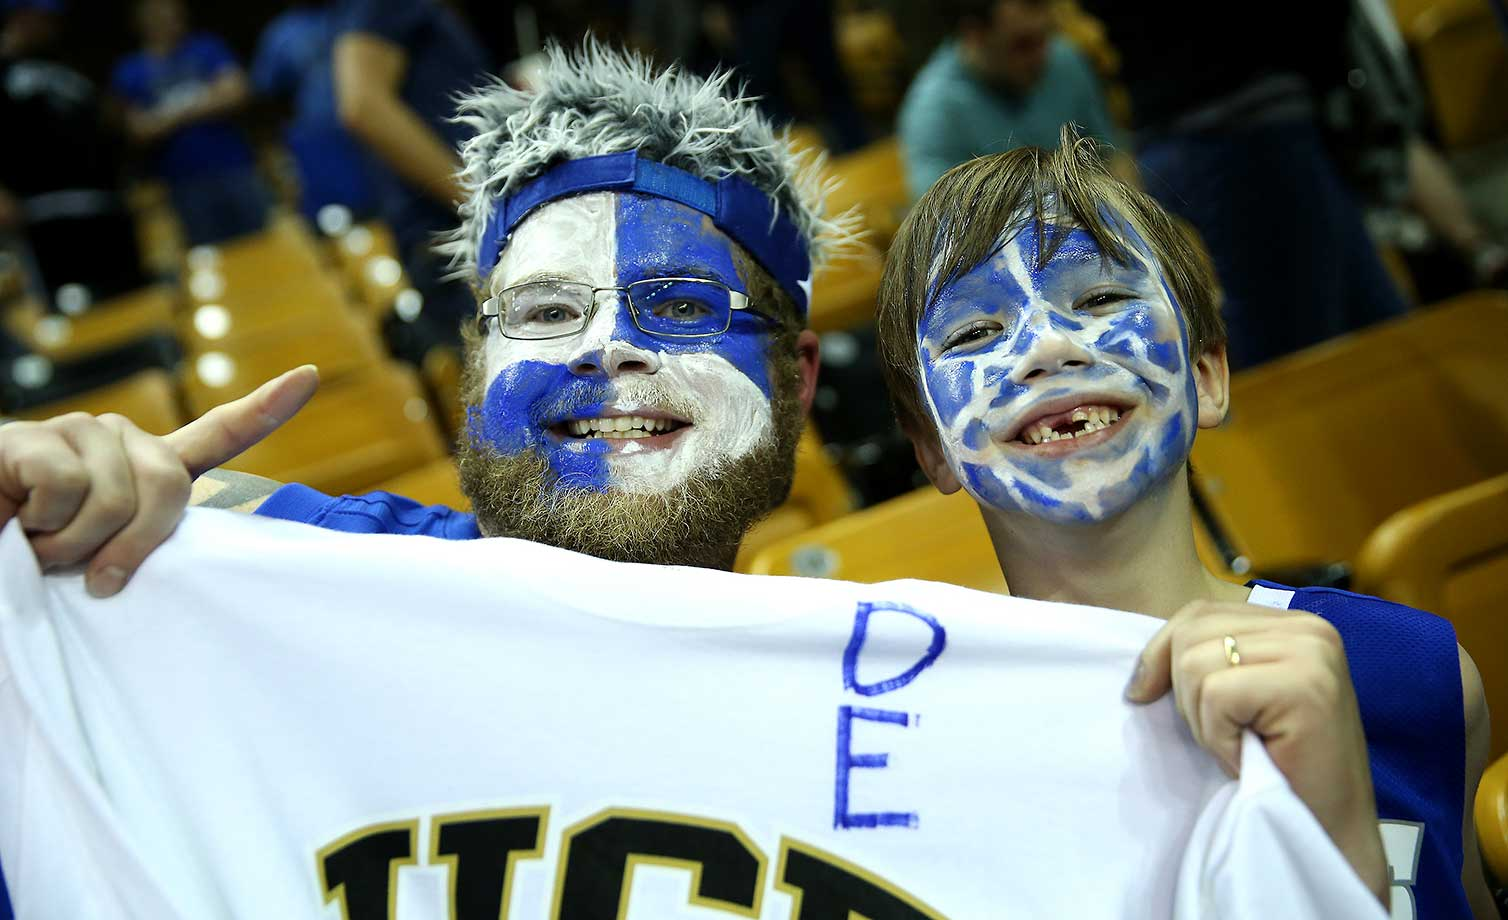 Memphis Tiger fans smile during a game between the Memphis Tigers and the UCF Knights at the CFE Arena in Orlando.